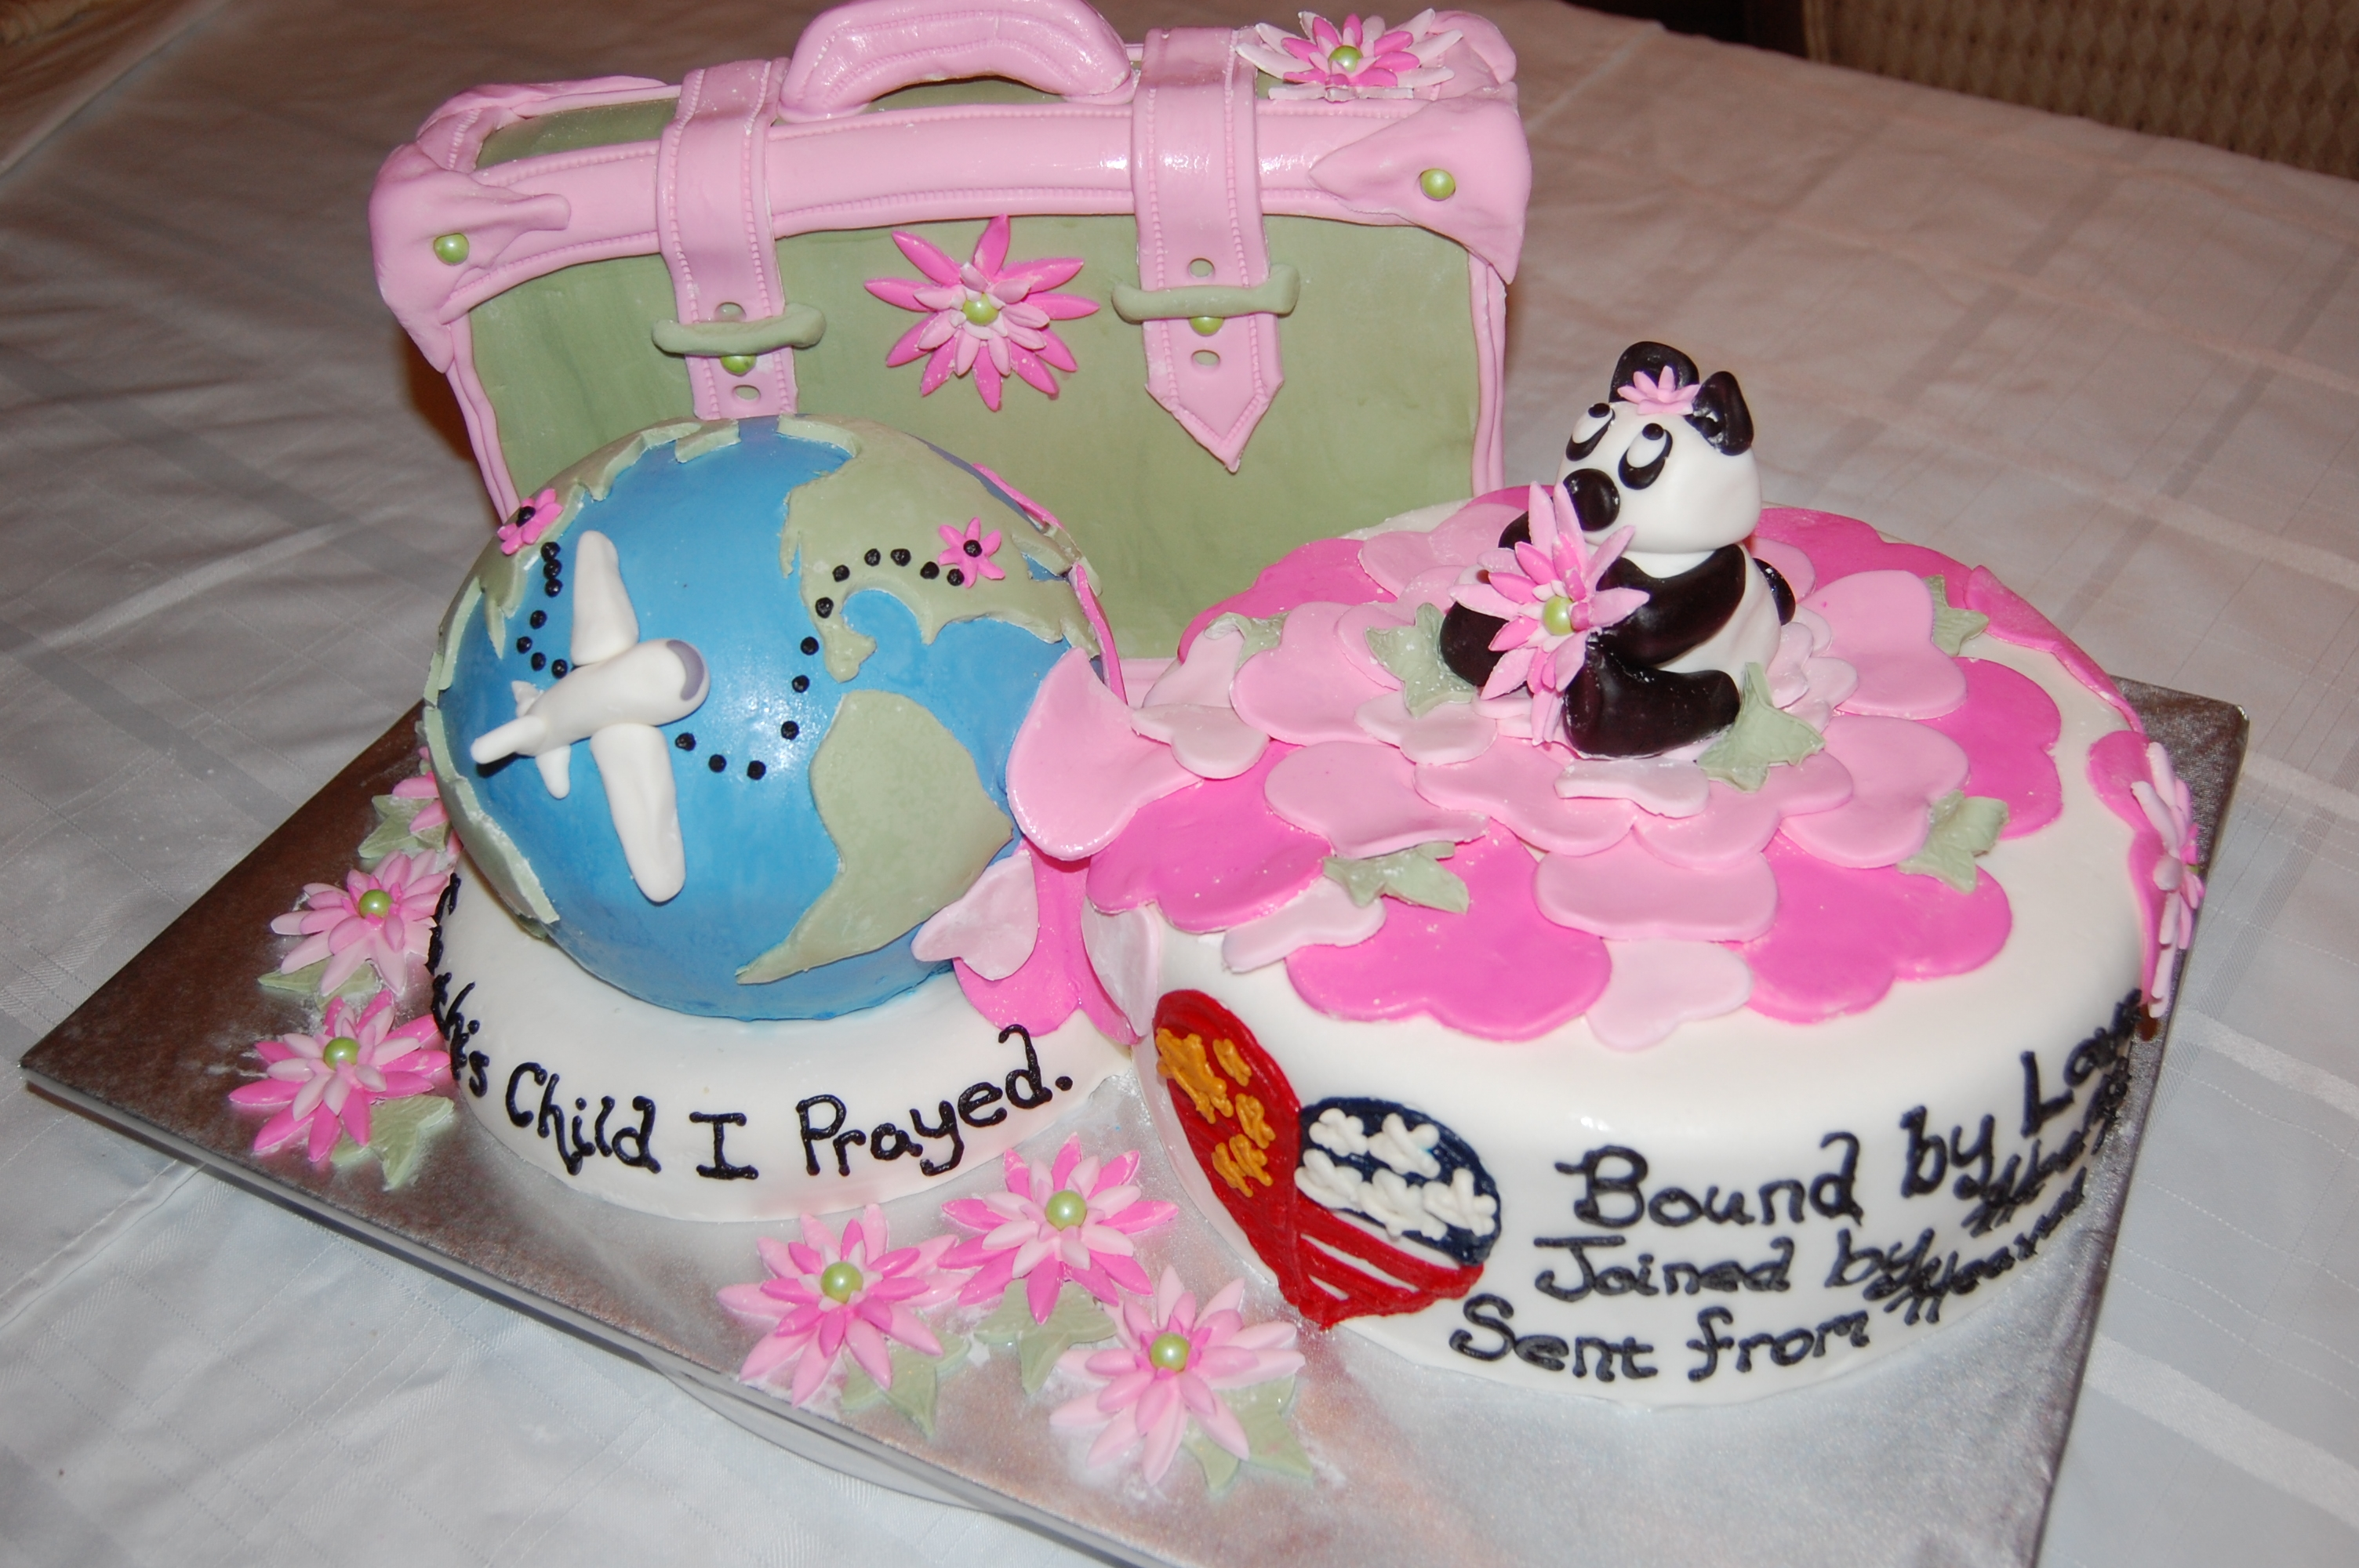 From China To Usa Adoption Is Final Baby Shower - CakeCentral.com